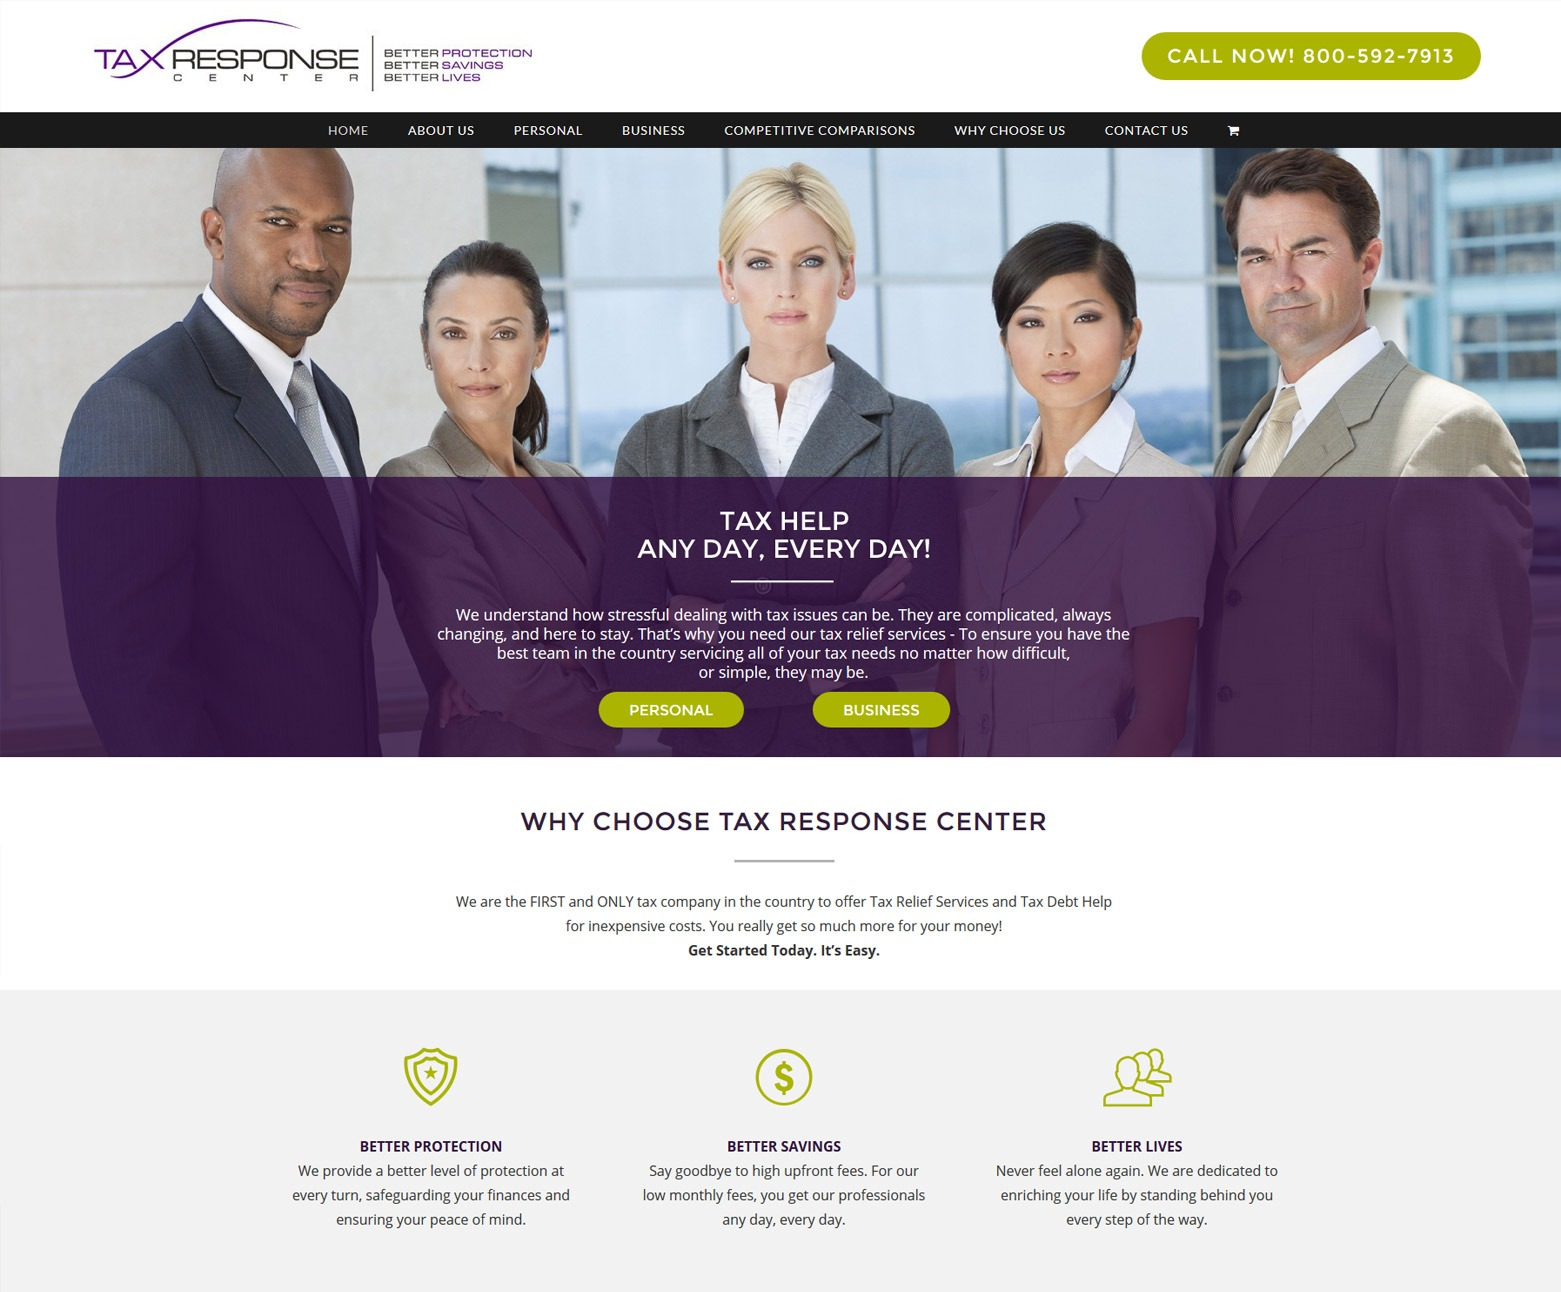 Los Angeles Tax Company Web Design Company